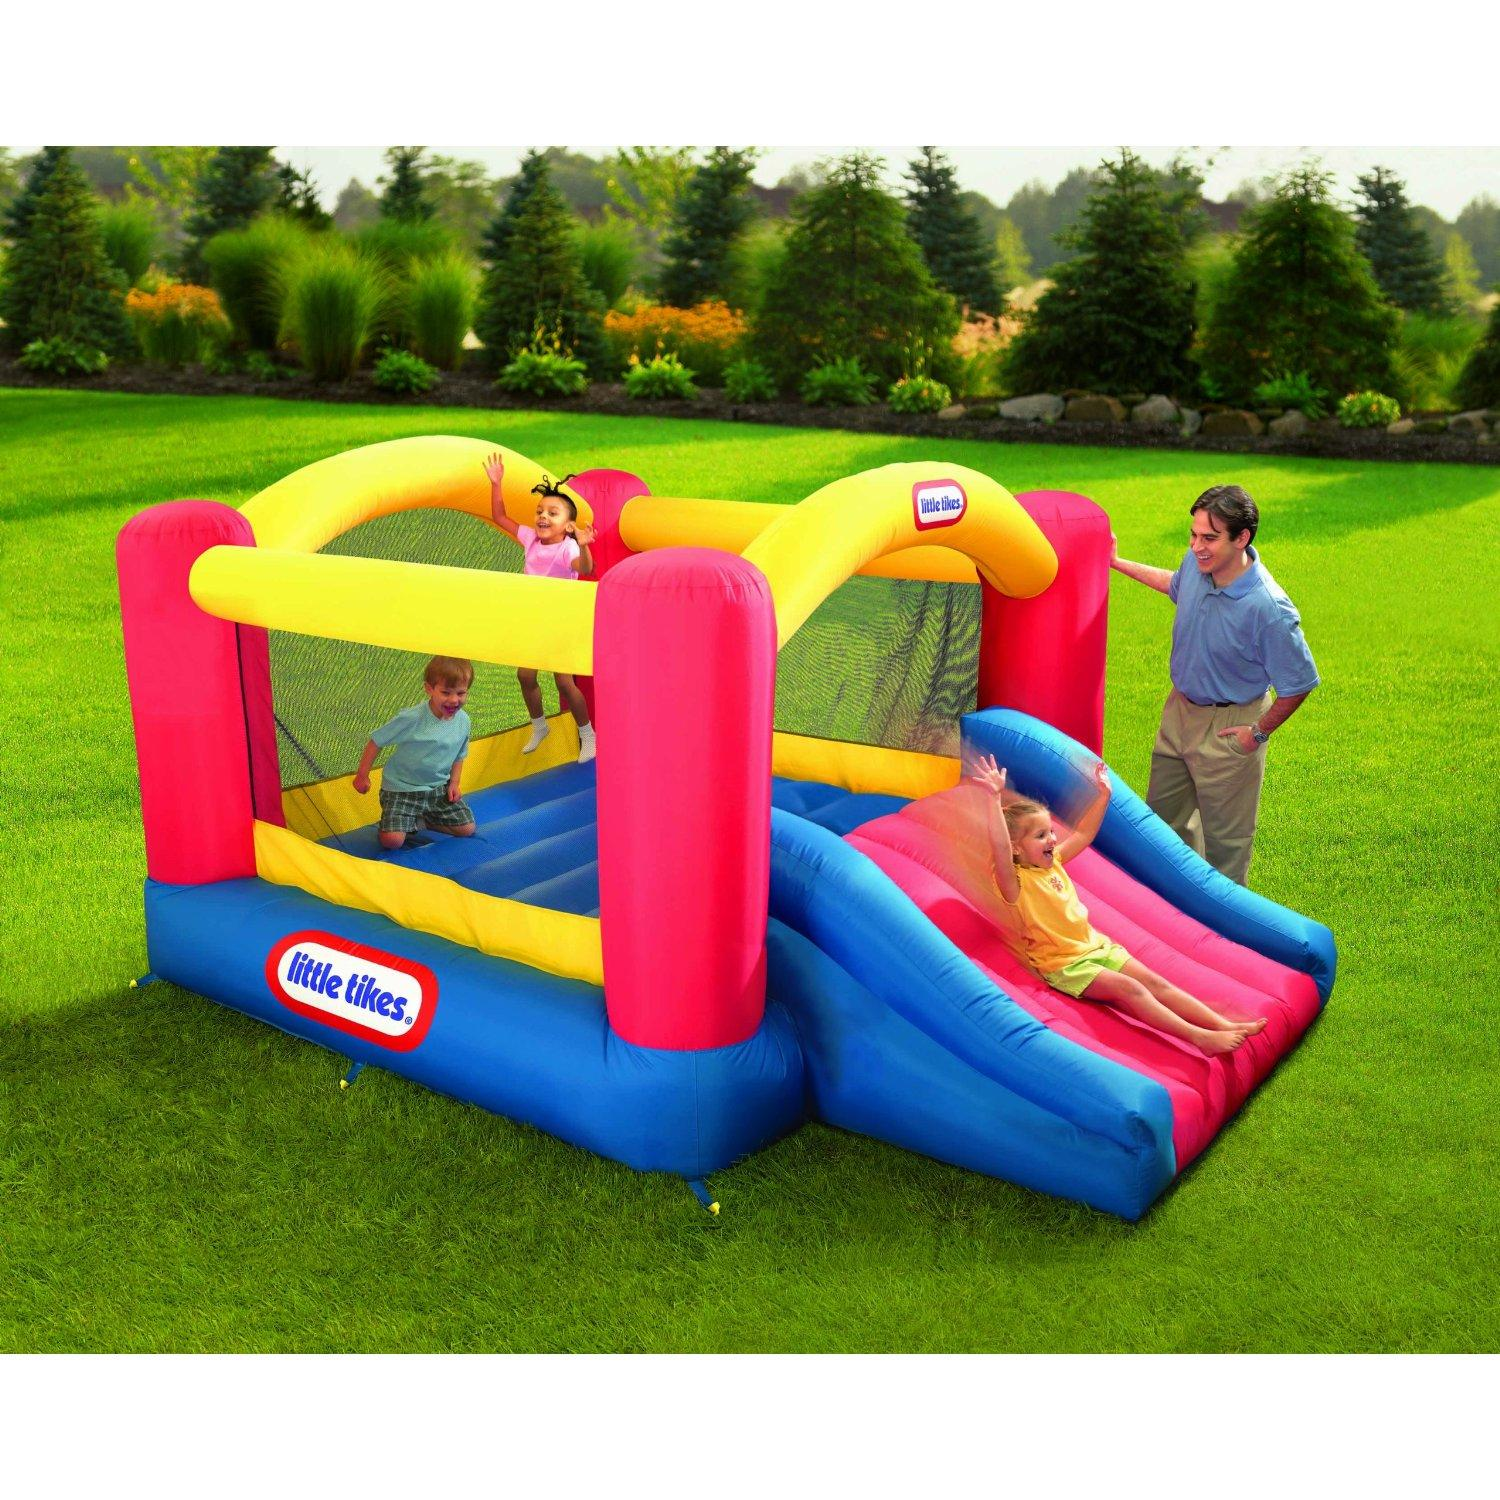 Fancy Little Tikes Bounce House For Play Yard Ideas: Wonderful Little Tikes Bounce House Made Of Caoutchouc With Jump Slide For Play Yard Ideas